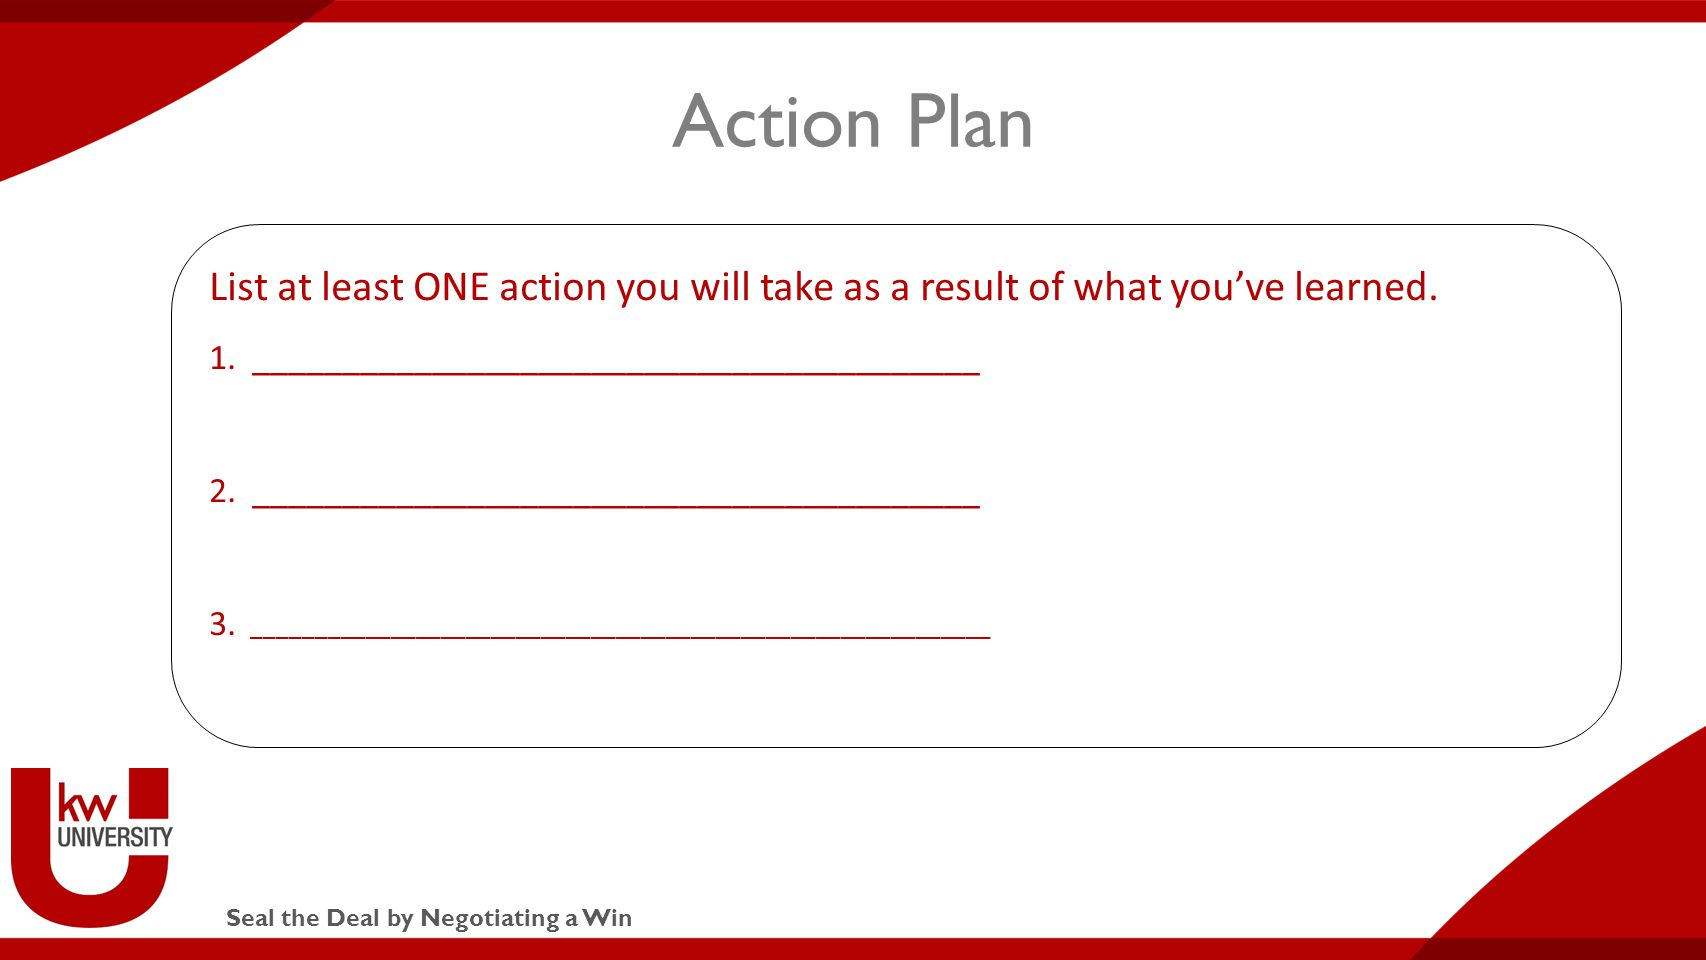 Seal the Deal by Negotiating a Win Action Plan List at least ONE action you will take as a result of what you've learned.